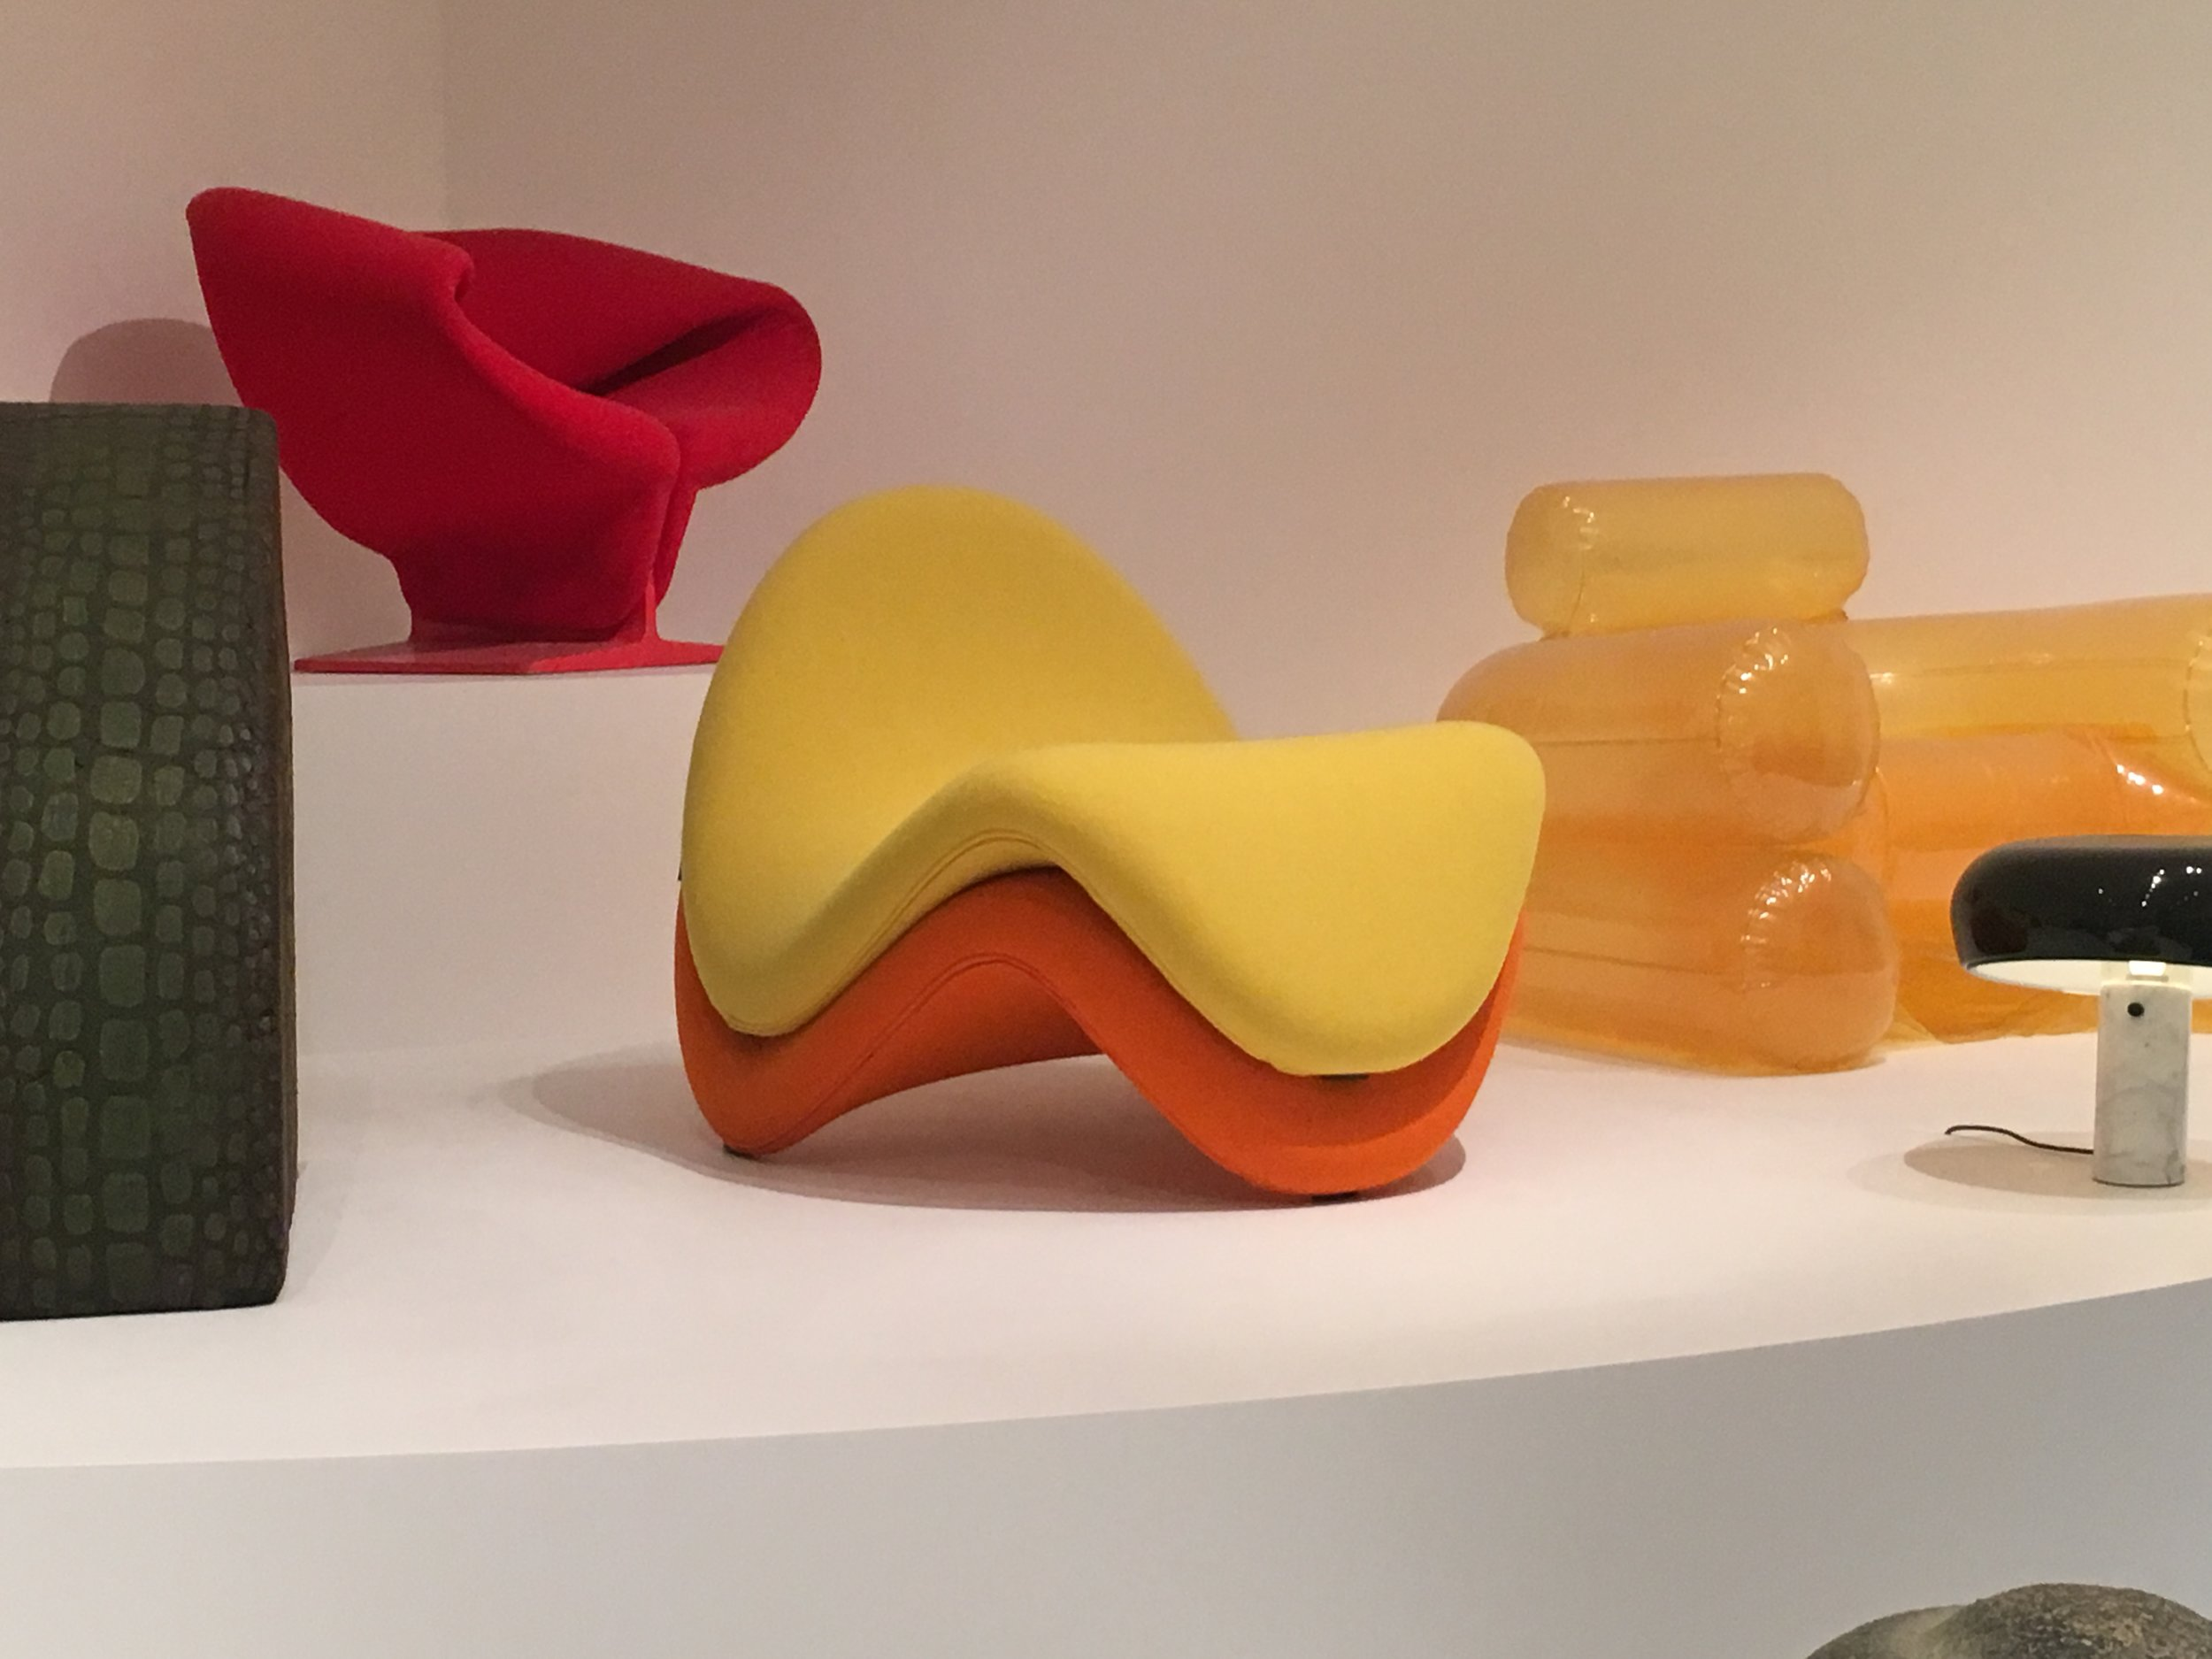 Pierre Paulin, Tongue Chair (model 577), 1967, Artifort, The Netherlands, Wool fabric, latex foam on tubular steel frame, Museum of Modern Art, Object number 453.2008.1 and 453.2008.2